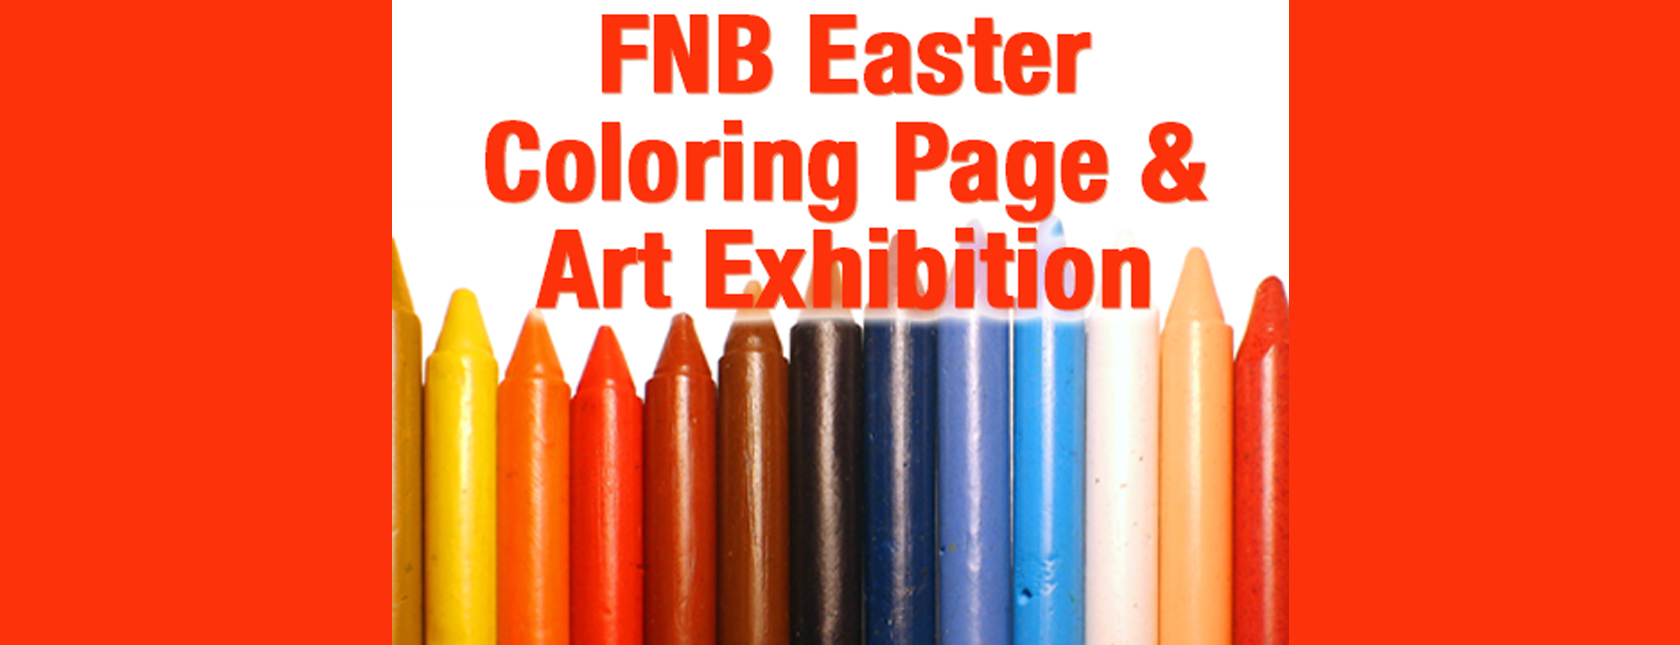 Coloring Page and Art Exhibition Happening Now at FNB!